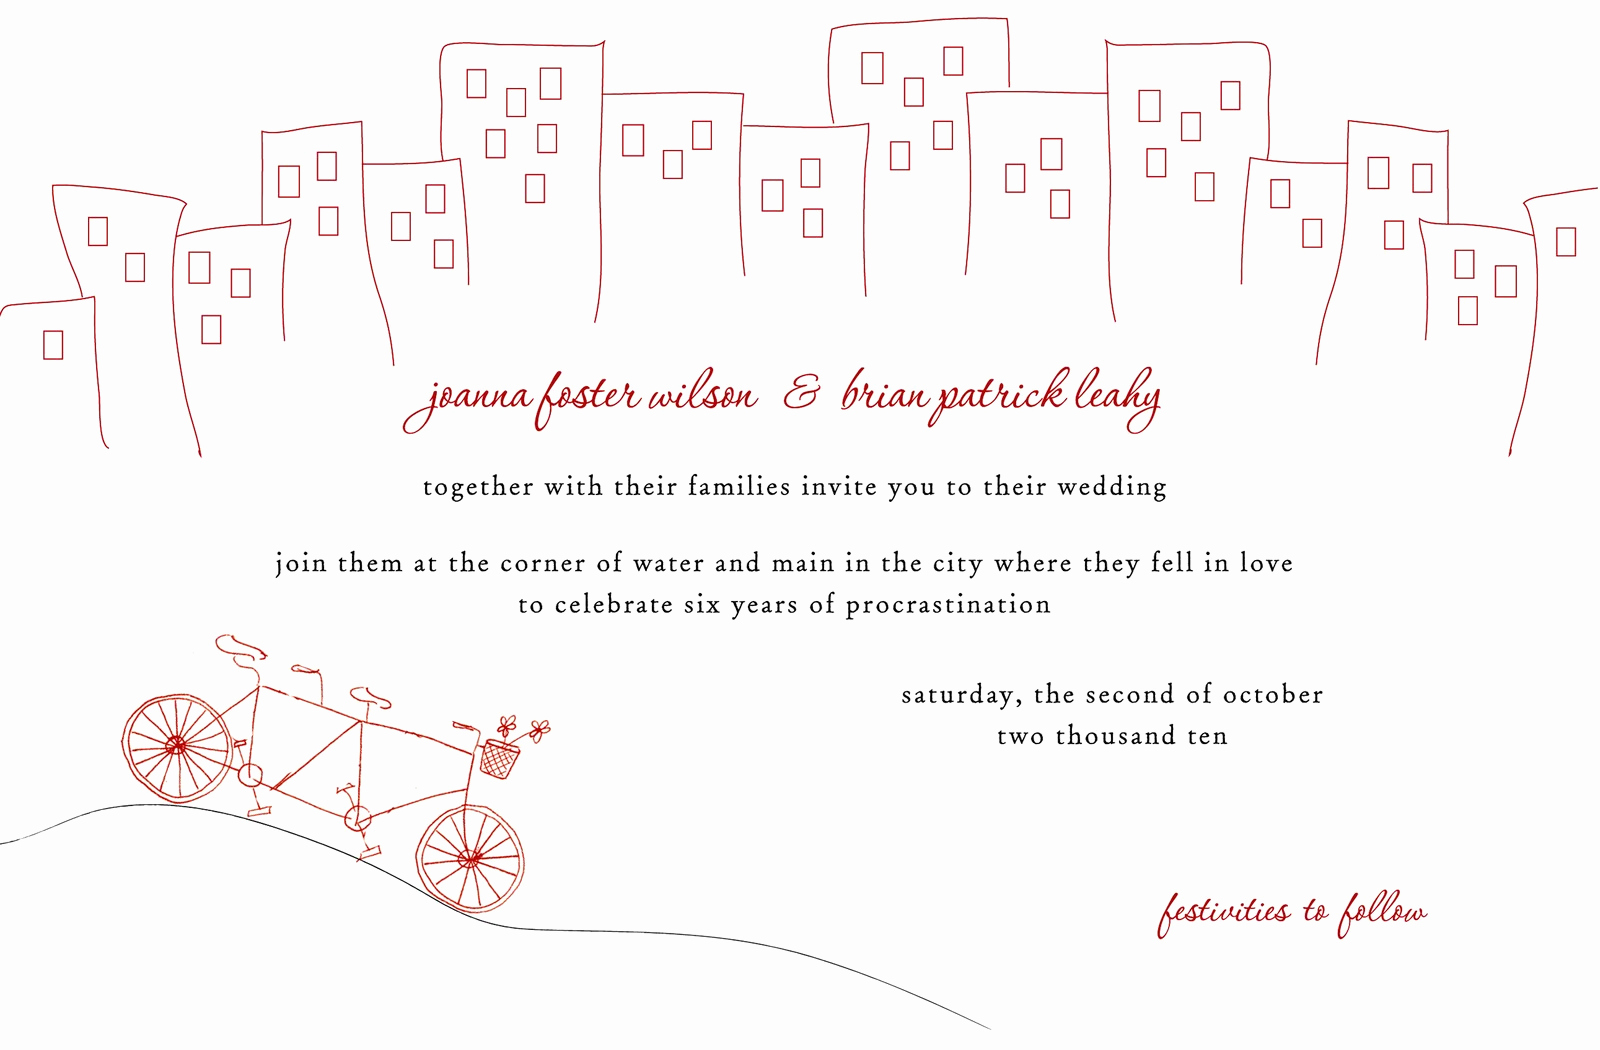 Farewell Party Invitation Wording Awesome Farewell Party Invitation Wording